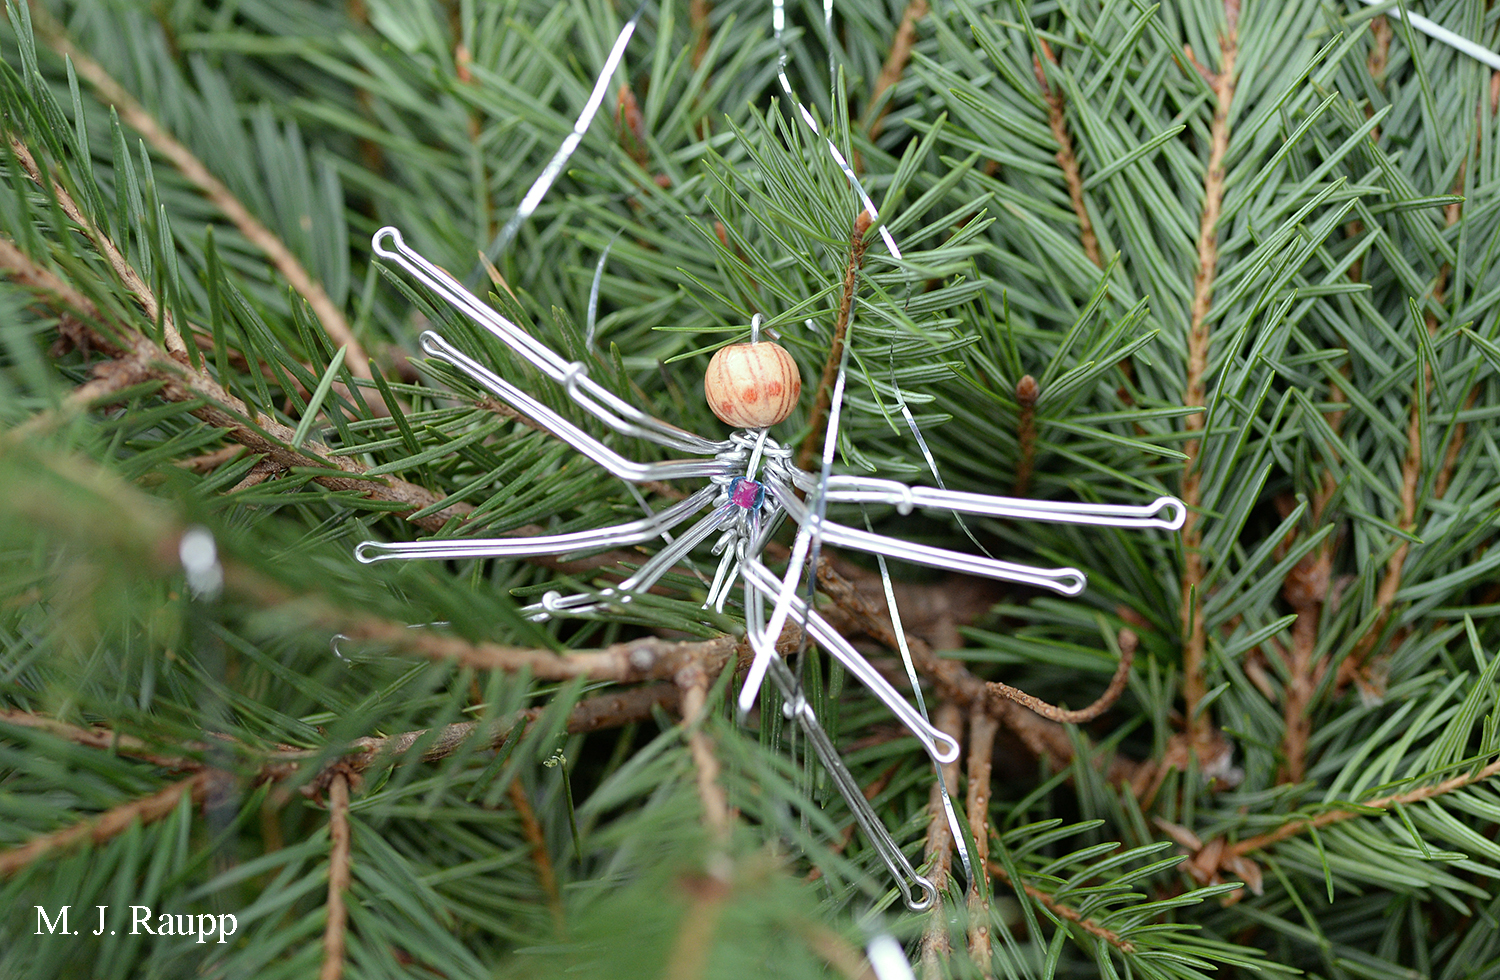 It's no surprise that the Bug Guy has a spider ornament on his Christmas tree.